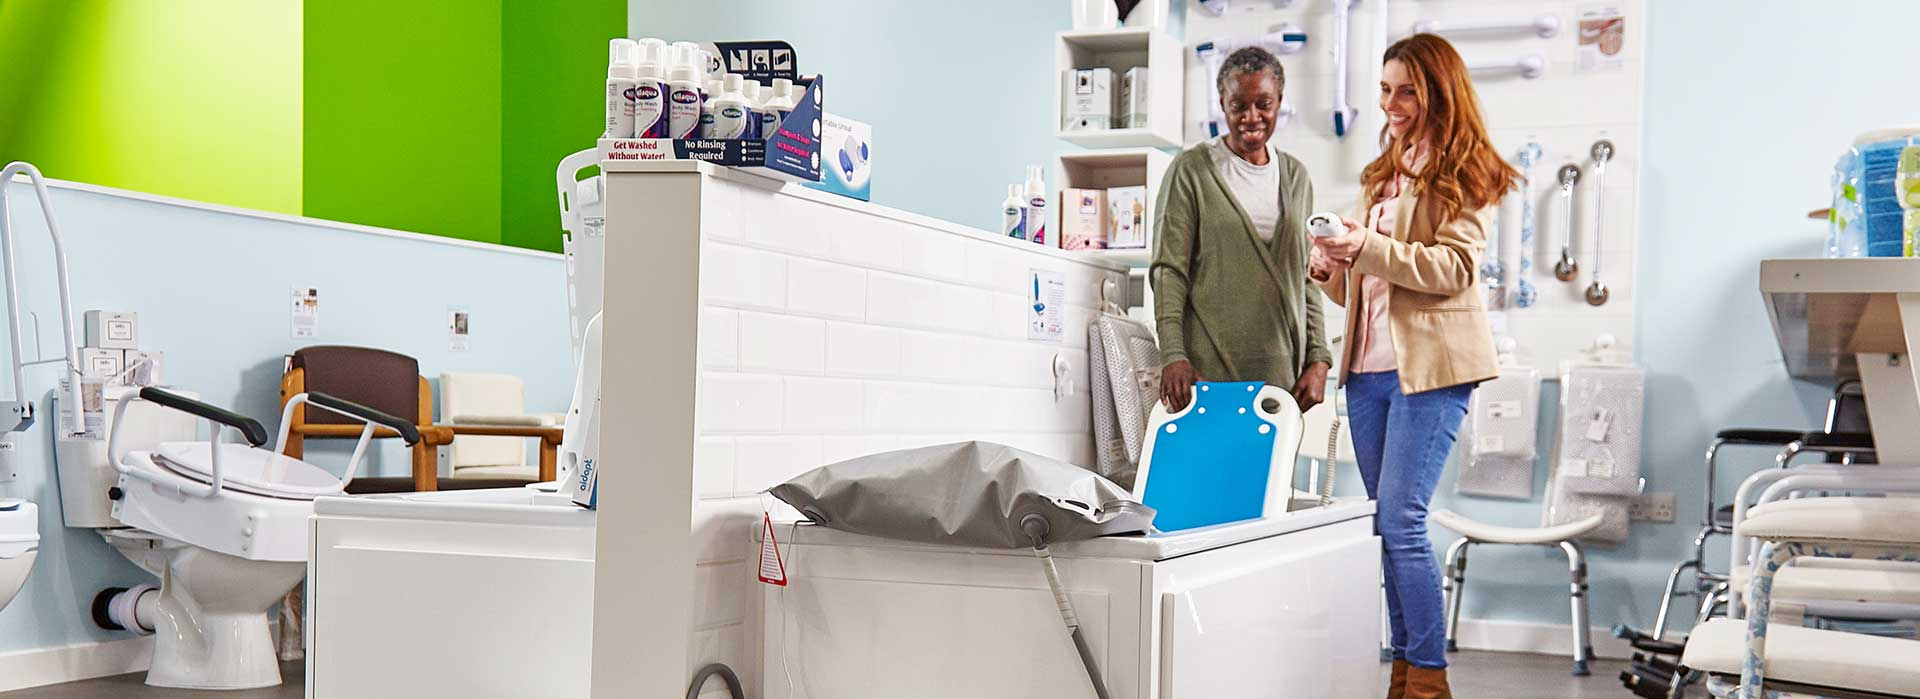 Occupational Therapist Reviews Bathroom Aids Stools And Seats